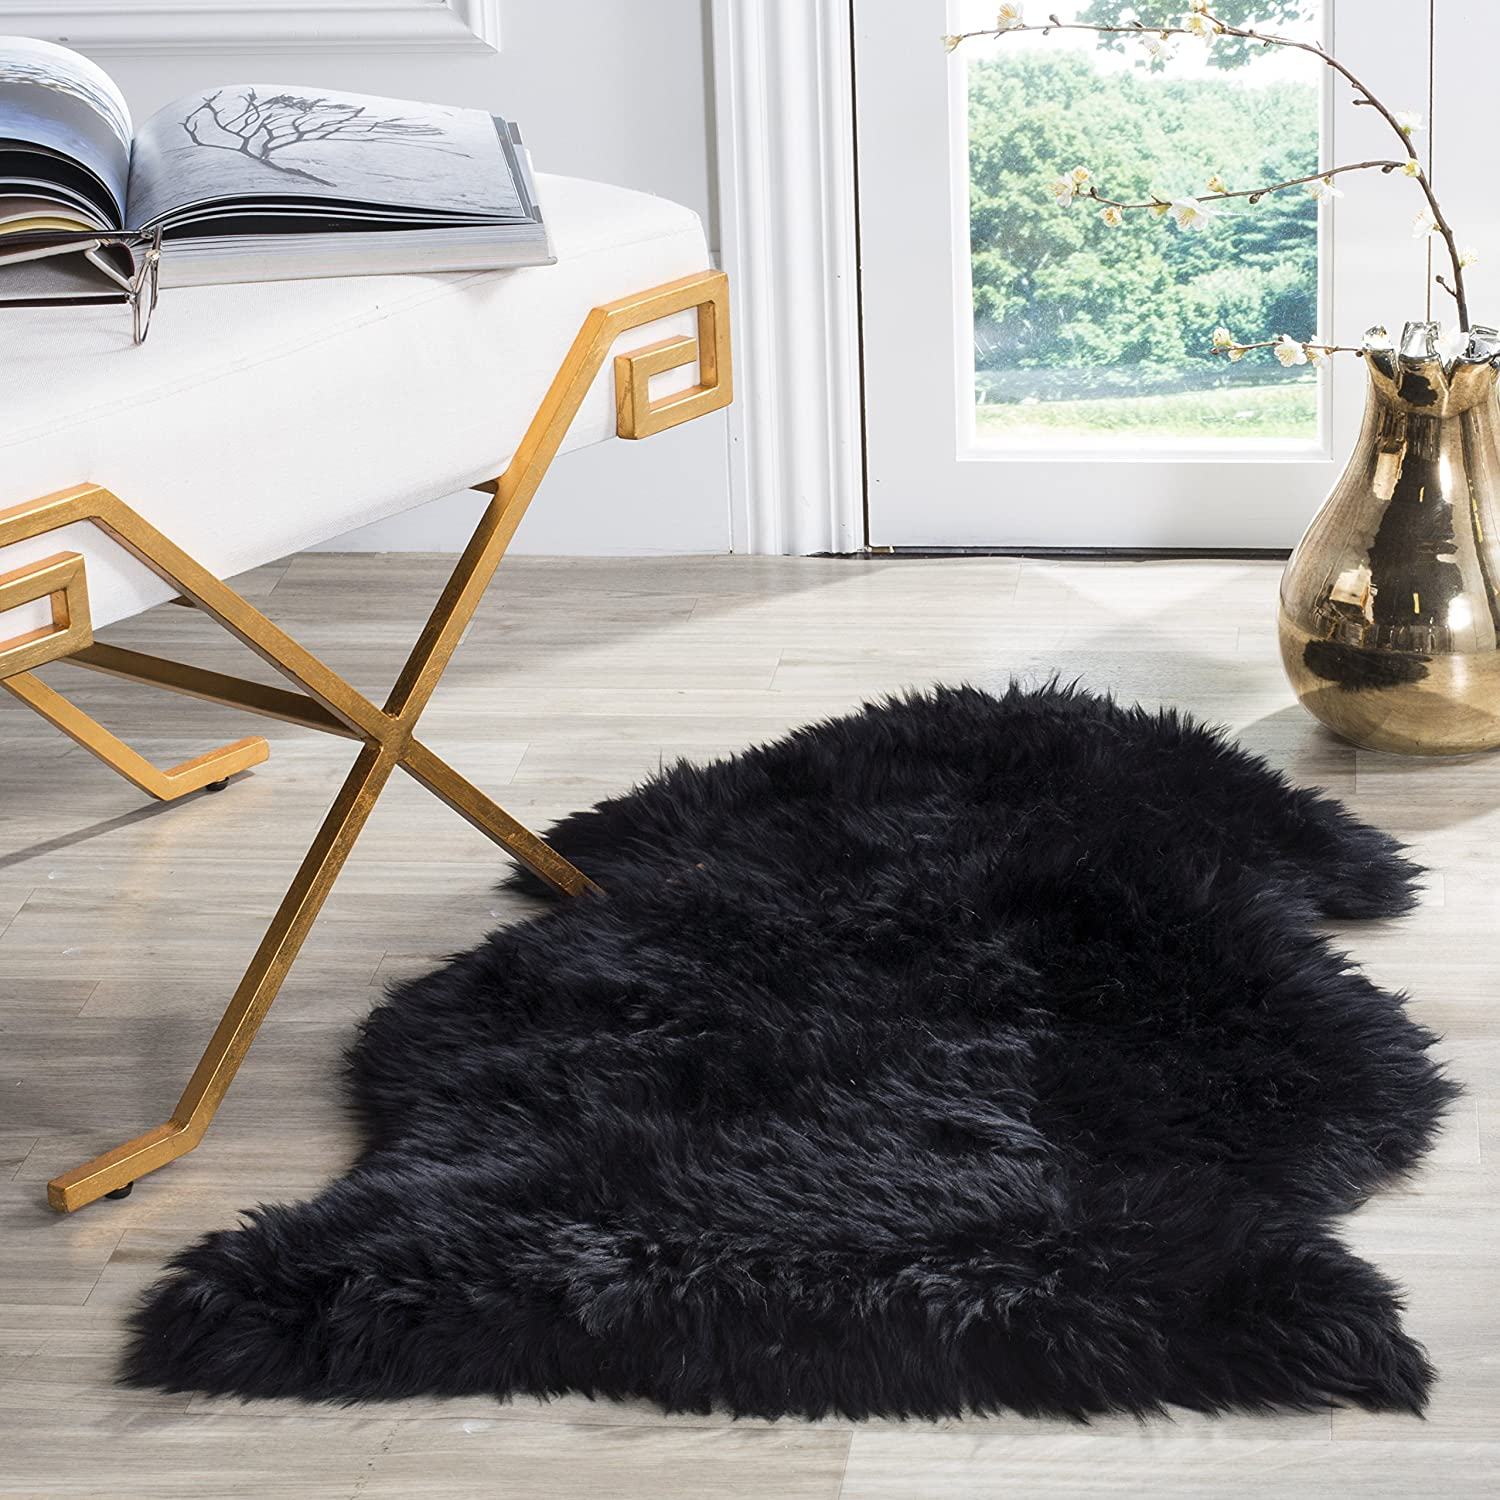 Safavieh Sheep Skin Collection SHS121C 3.35-inch Extra Thick Area Rug, 2' x 3', Midnight Black